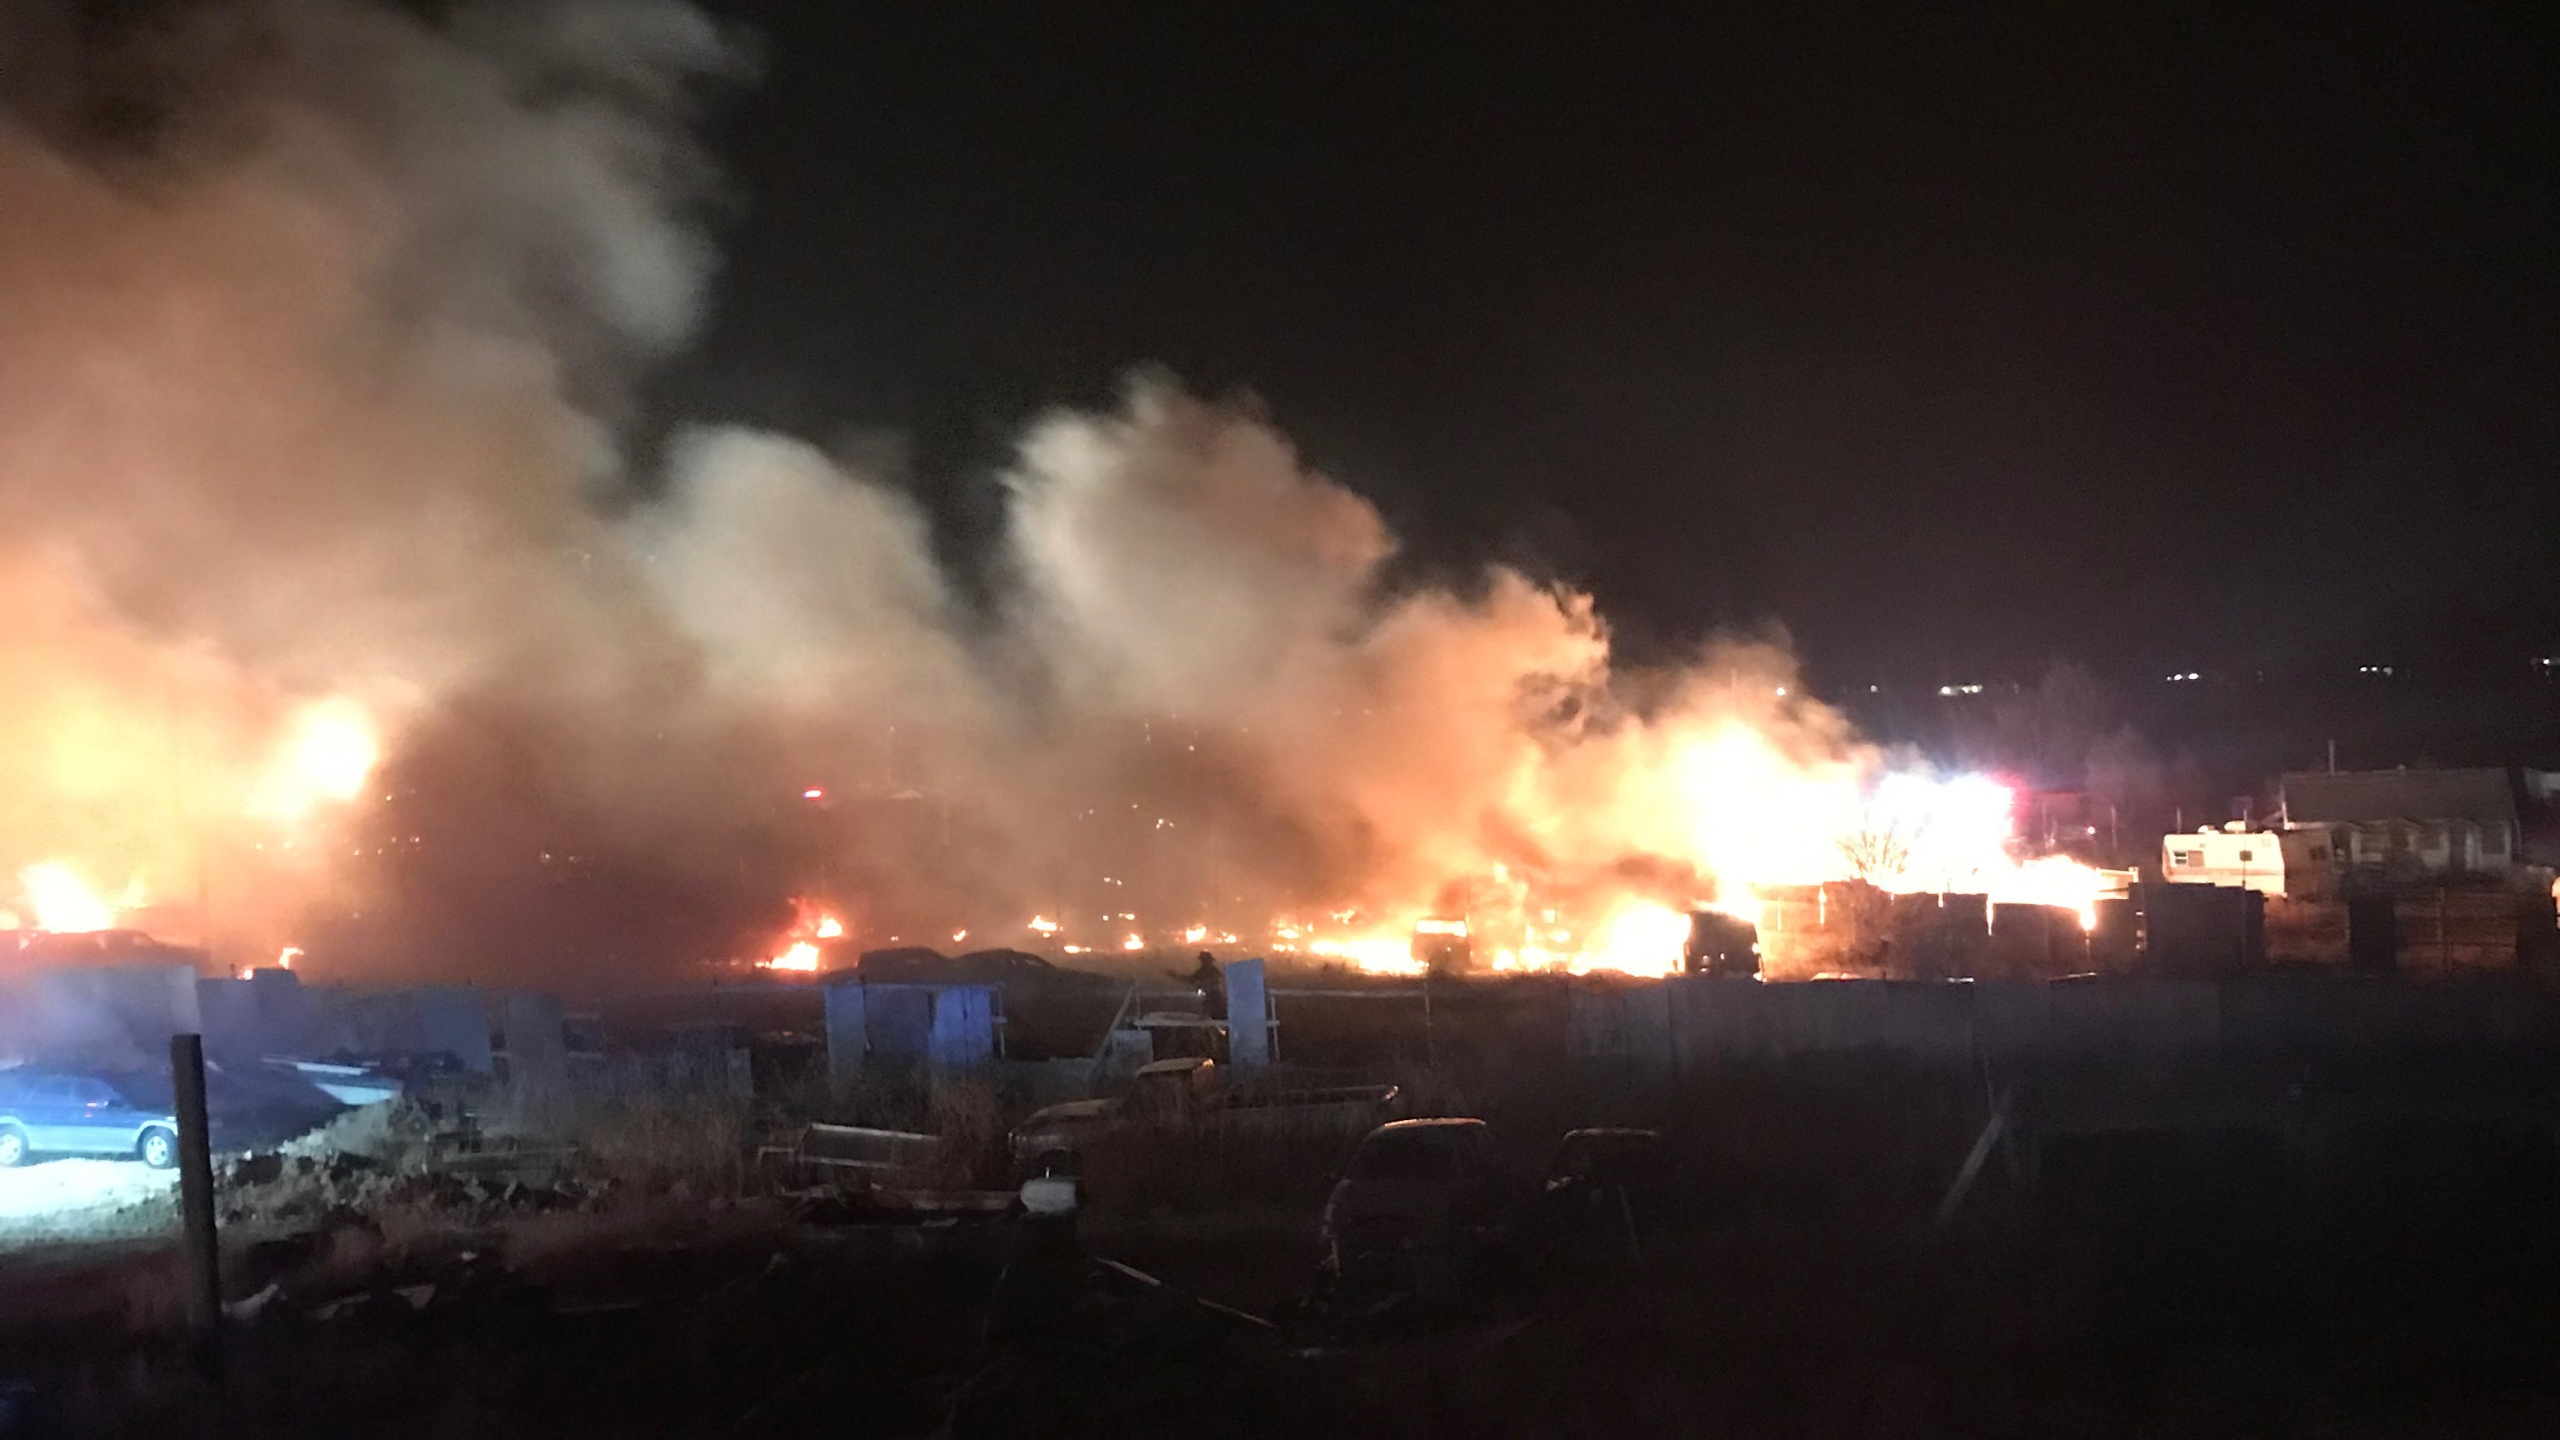 Three homes were destroyed by a fire in Pueblo County Wednesday evening. / Photo courtesy Pueblo County Sheriff's Office